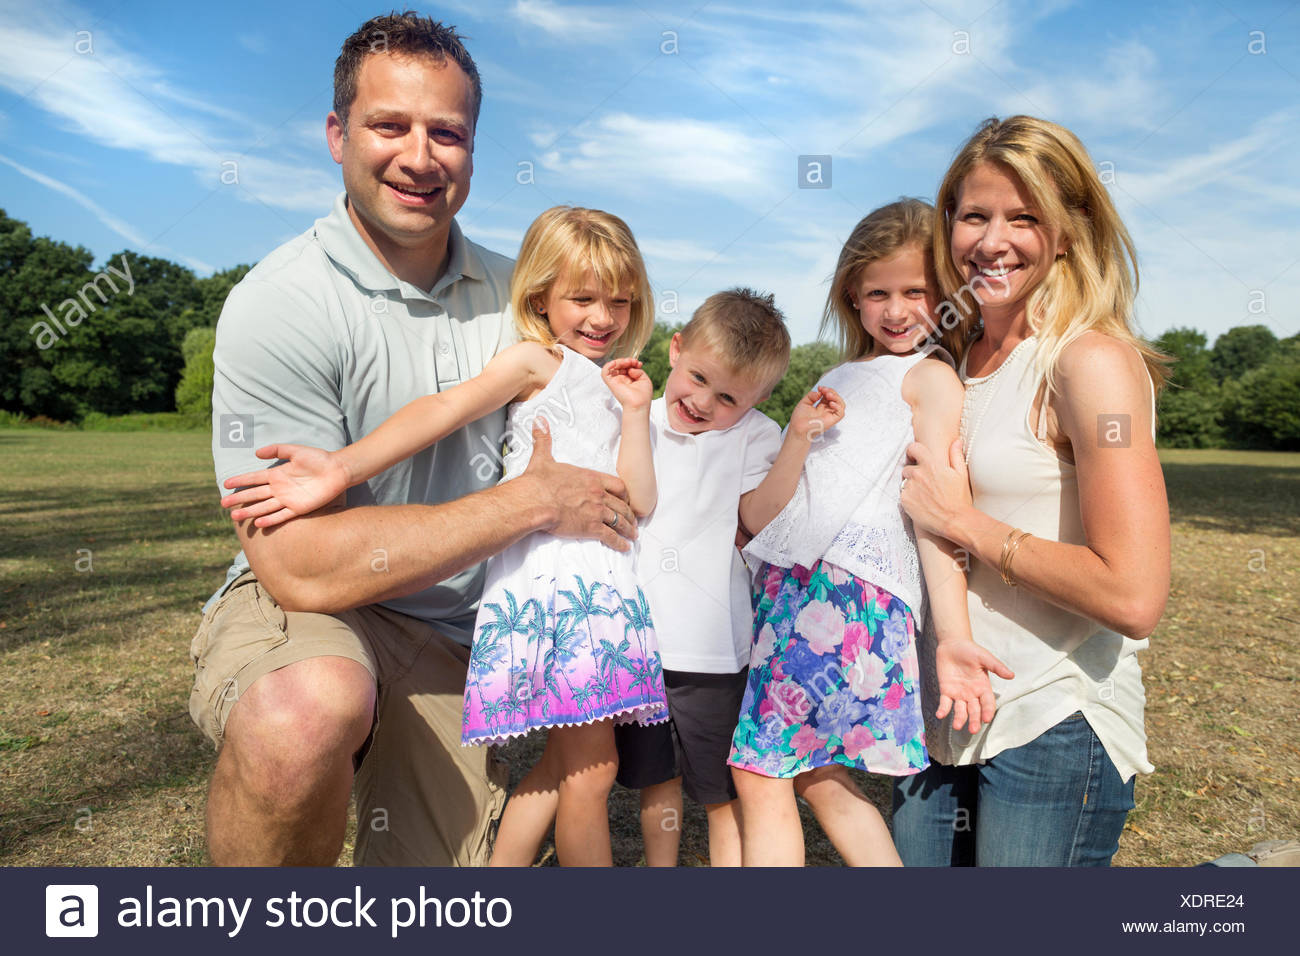 Family with three children in a park, posing for a picture. - Stock Image